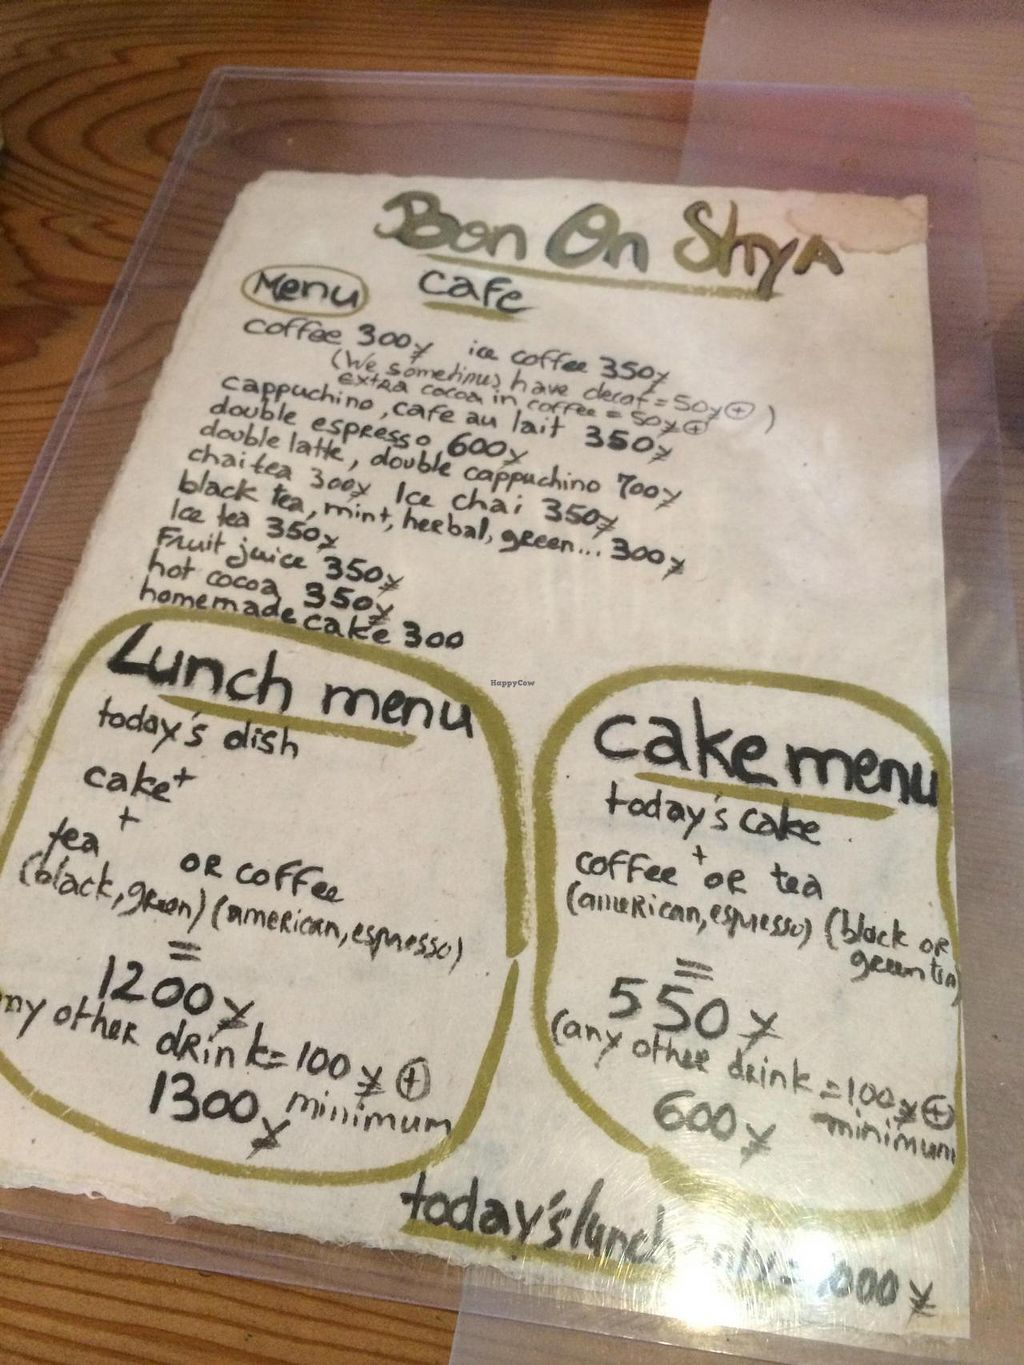 "Photo of Bon On Shya International Cafe  by <a href=""/members/profile/Meggie%20and%20Ben"">Meggie and Ben</a> <br/>Menu <br/> April 24, 2014  - <a href='/contact/abuse/image/38348/68513'>Report</a>"